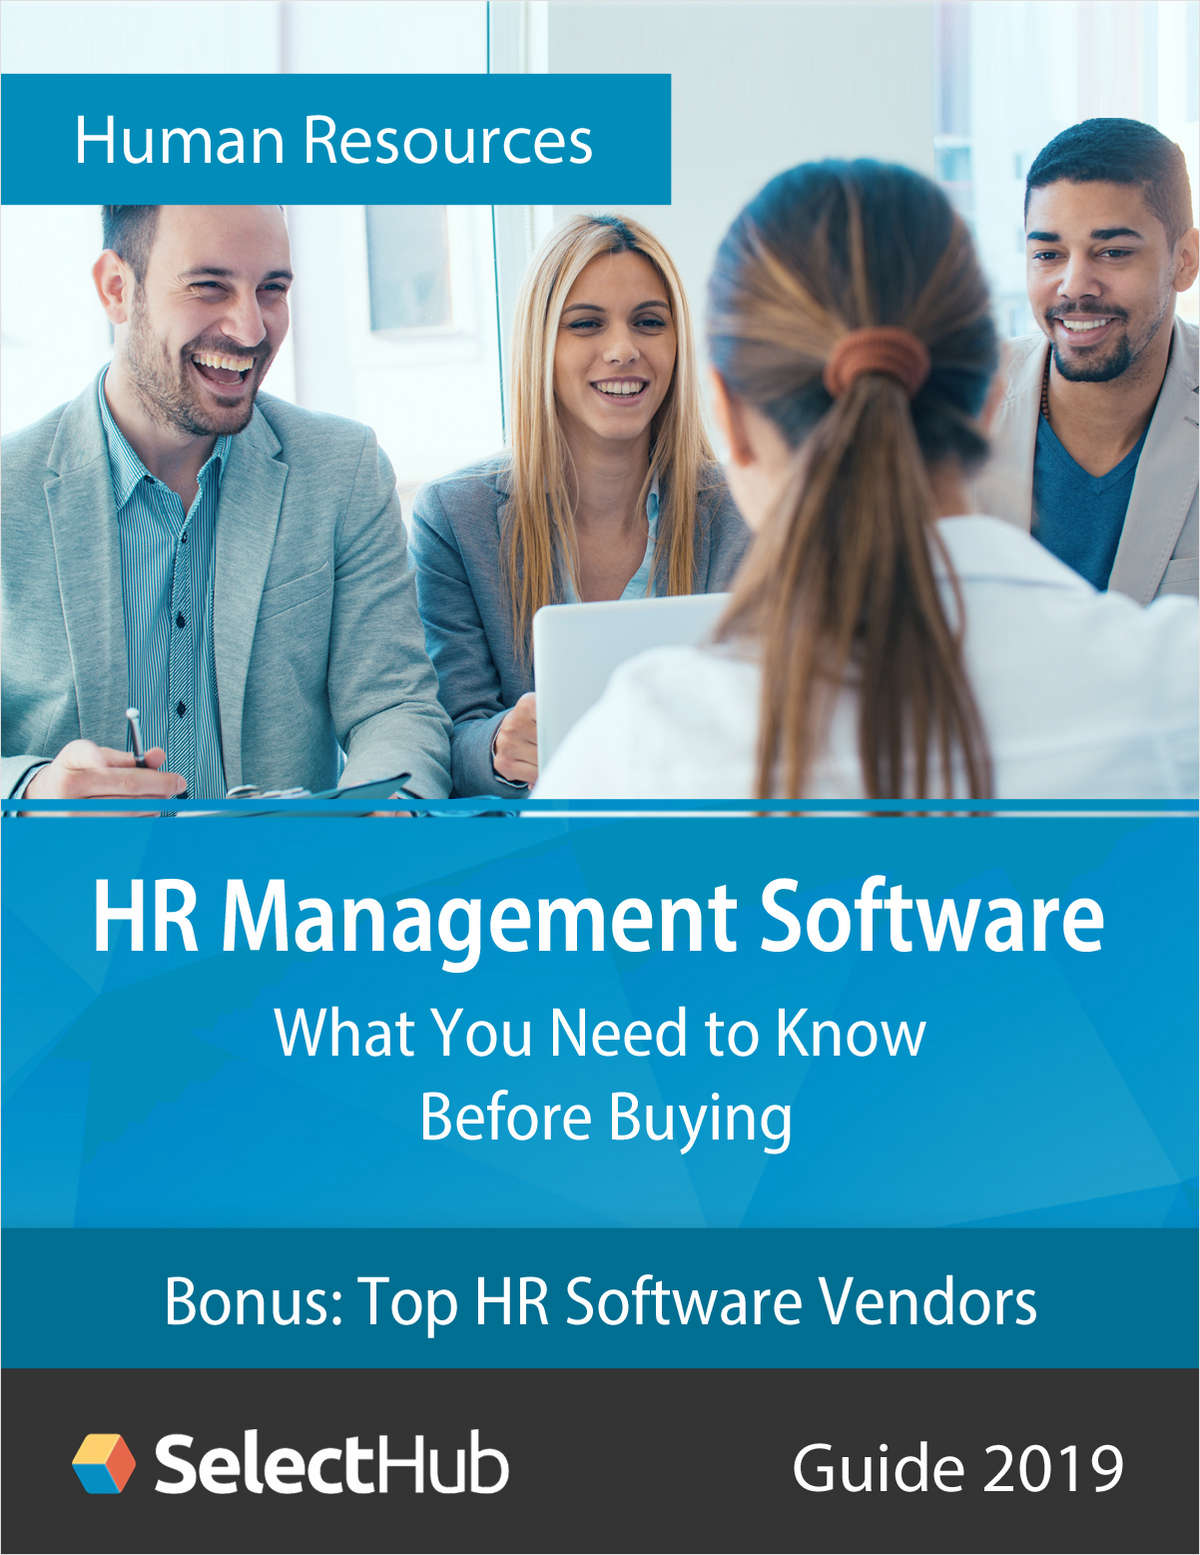 HR Management Software: What You Need to Know Before Buying